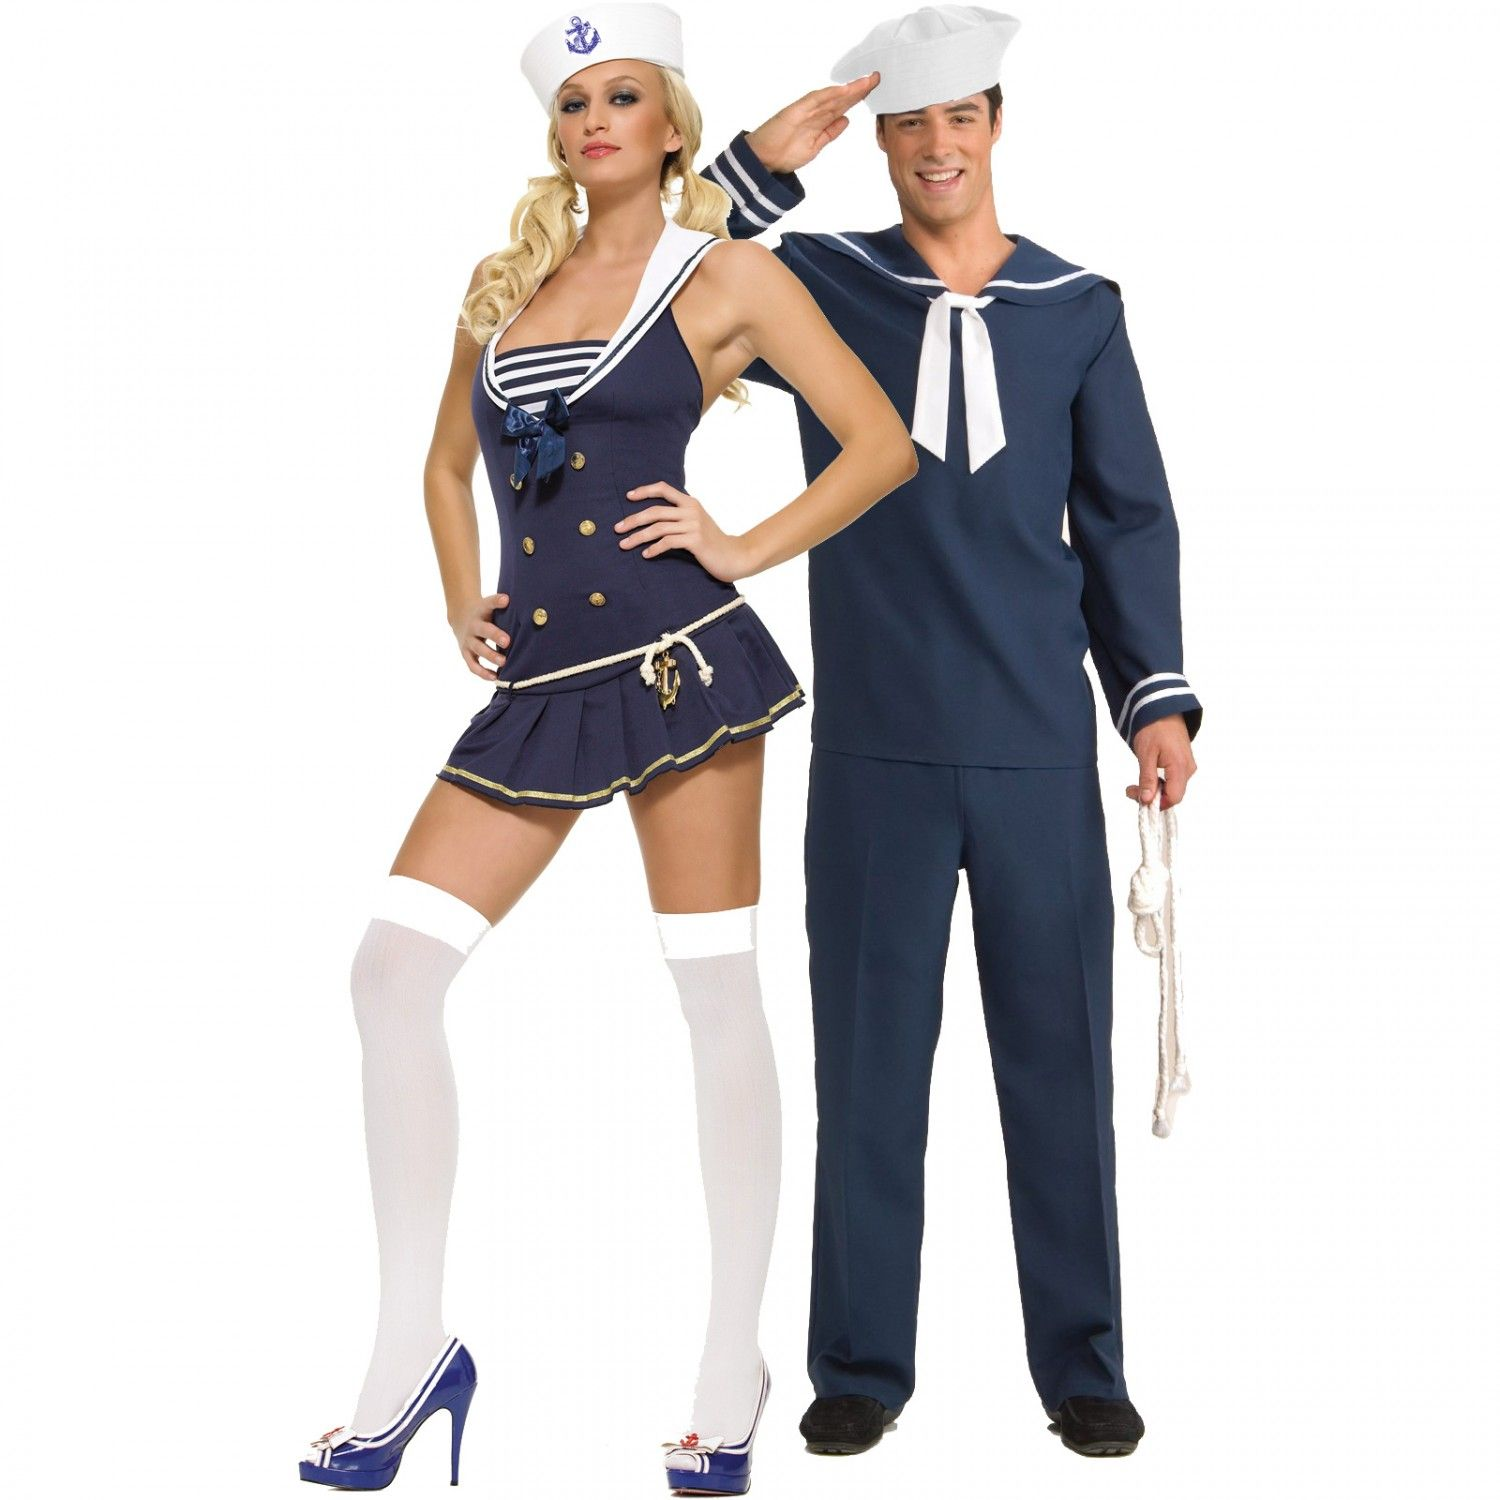 sailor couples costumes - Sailors Halloween Costumes